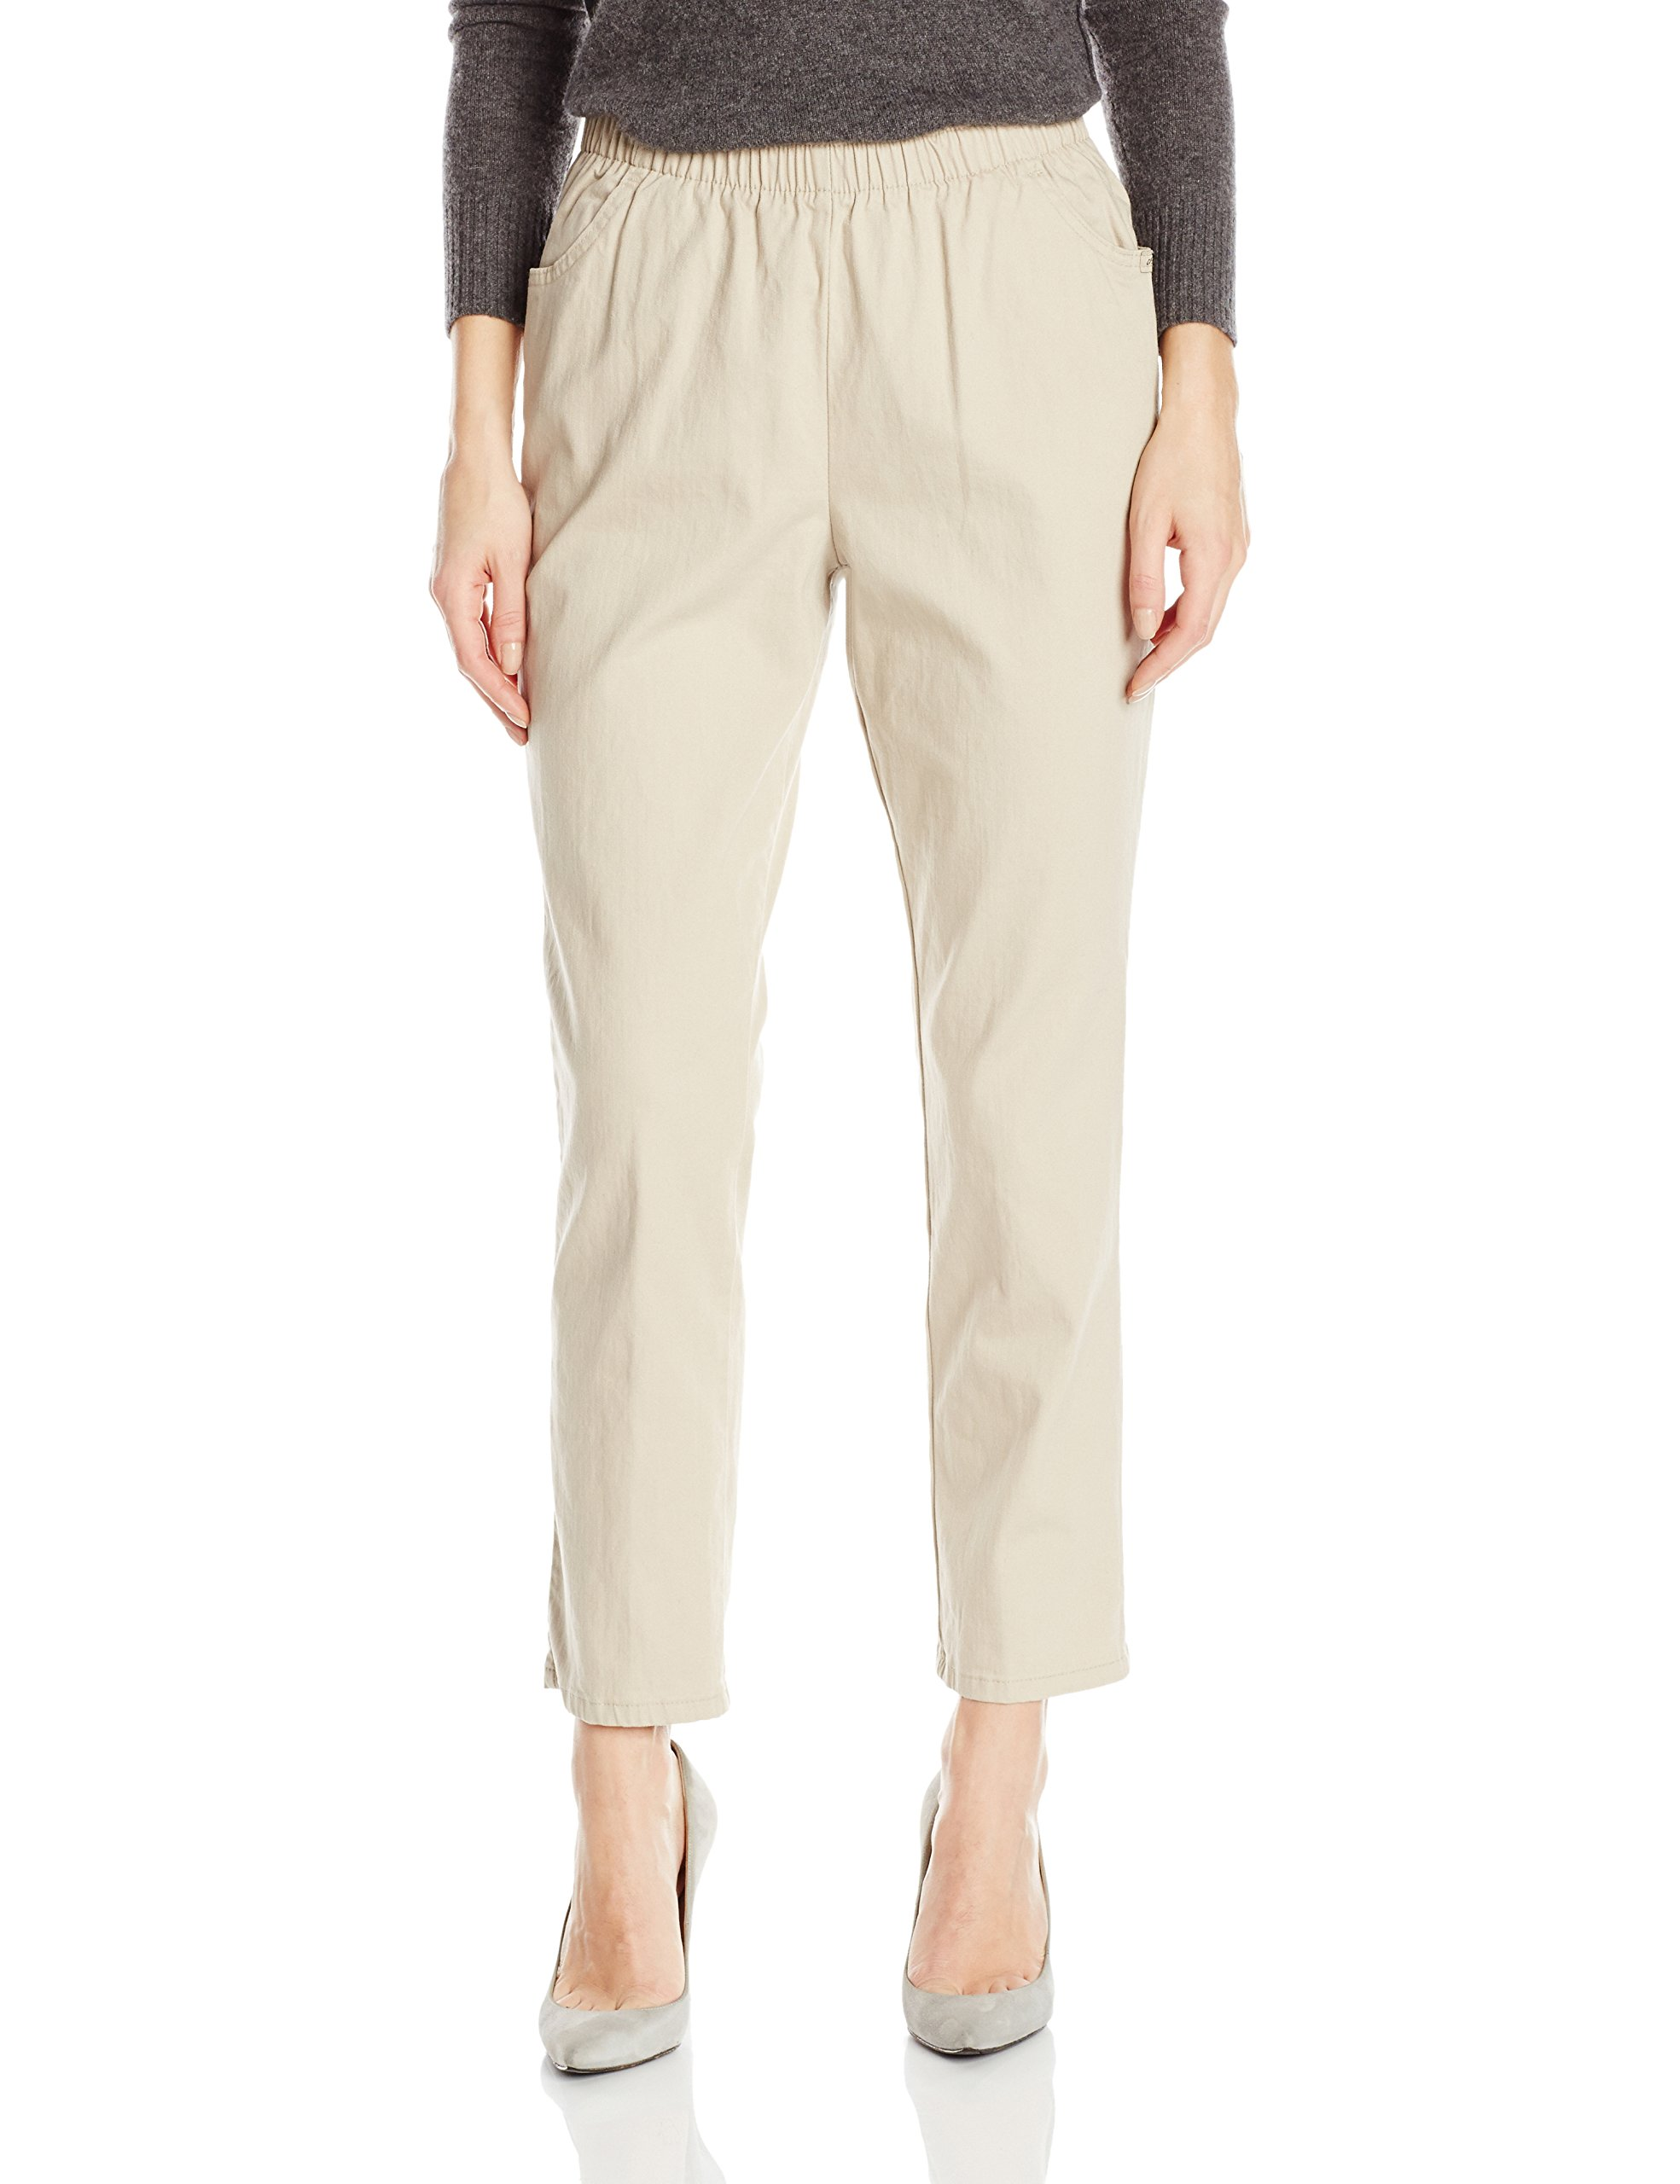 Chic Classic Collection Women's Stretch Elastic Waist Pull-On Pant, Khaki Slub Twill, 14P